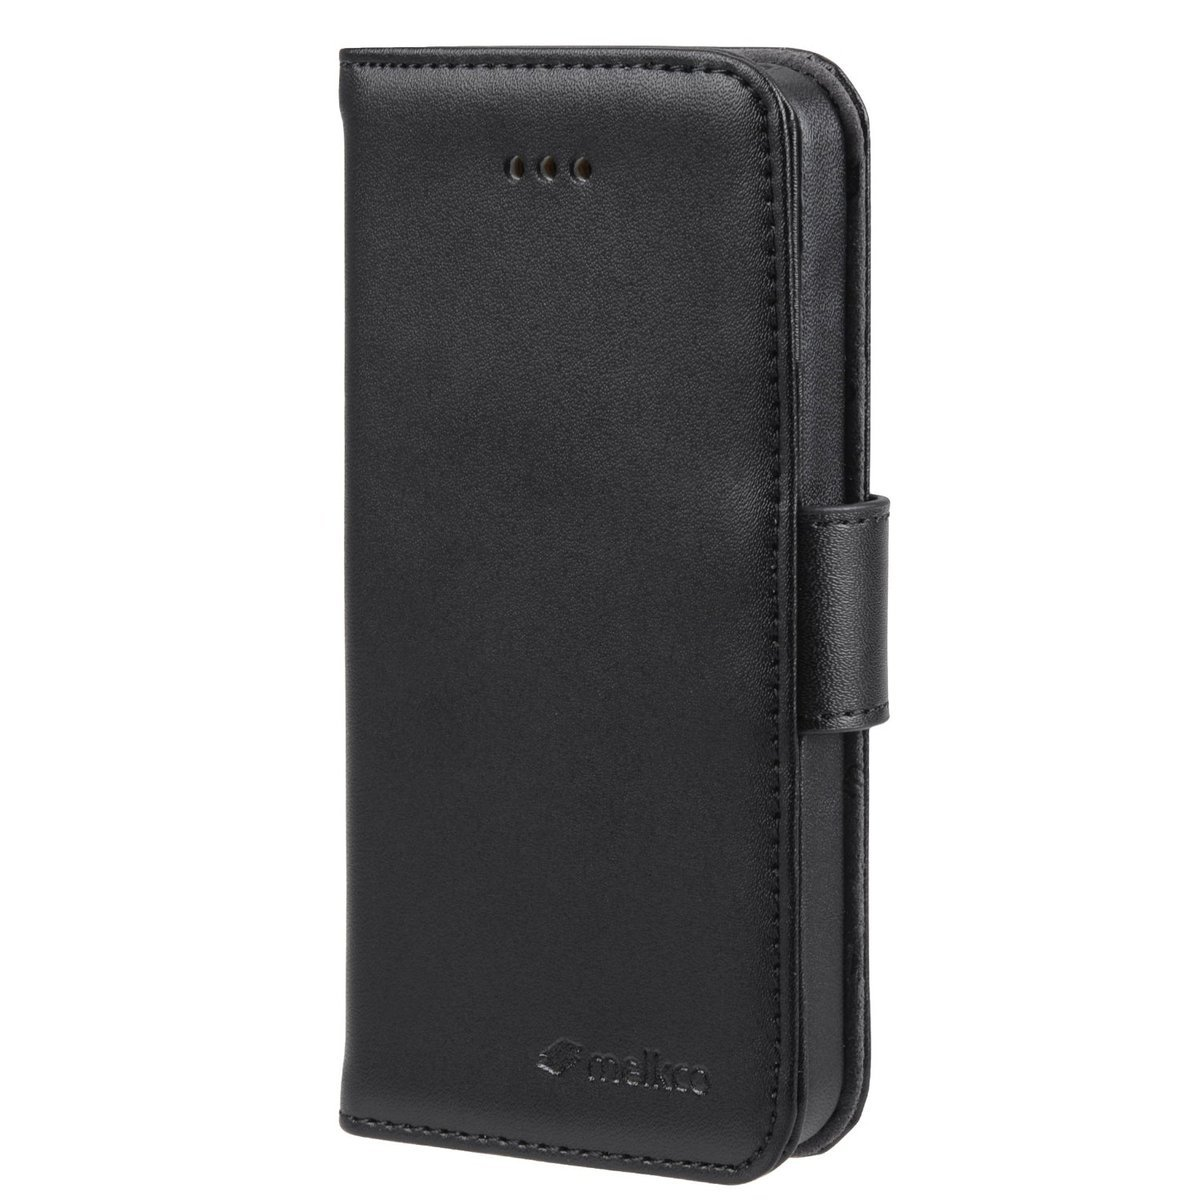 Apple iPhone 5s Wallet Book Type 高級真皮革手機套 - 黑色